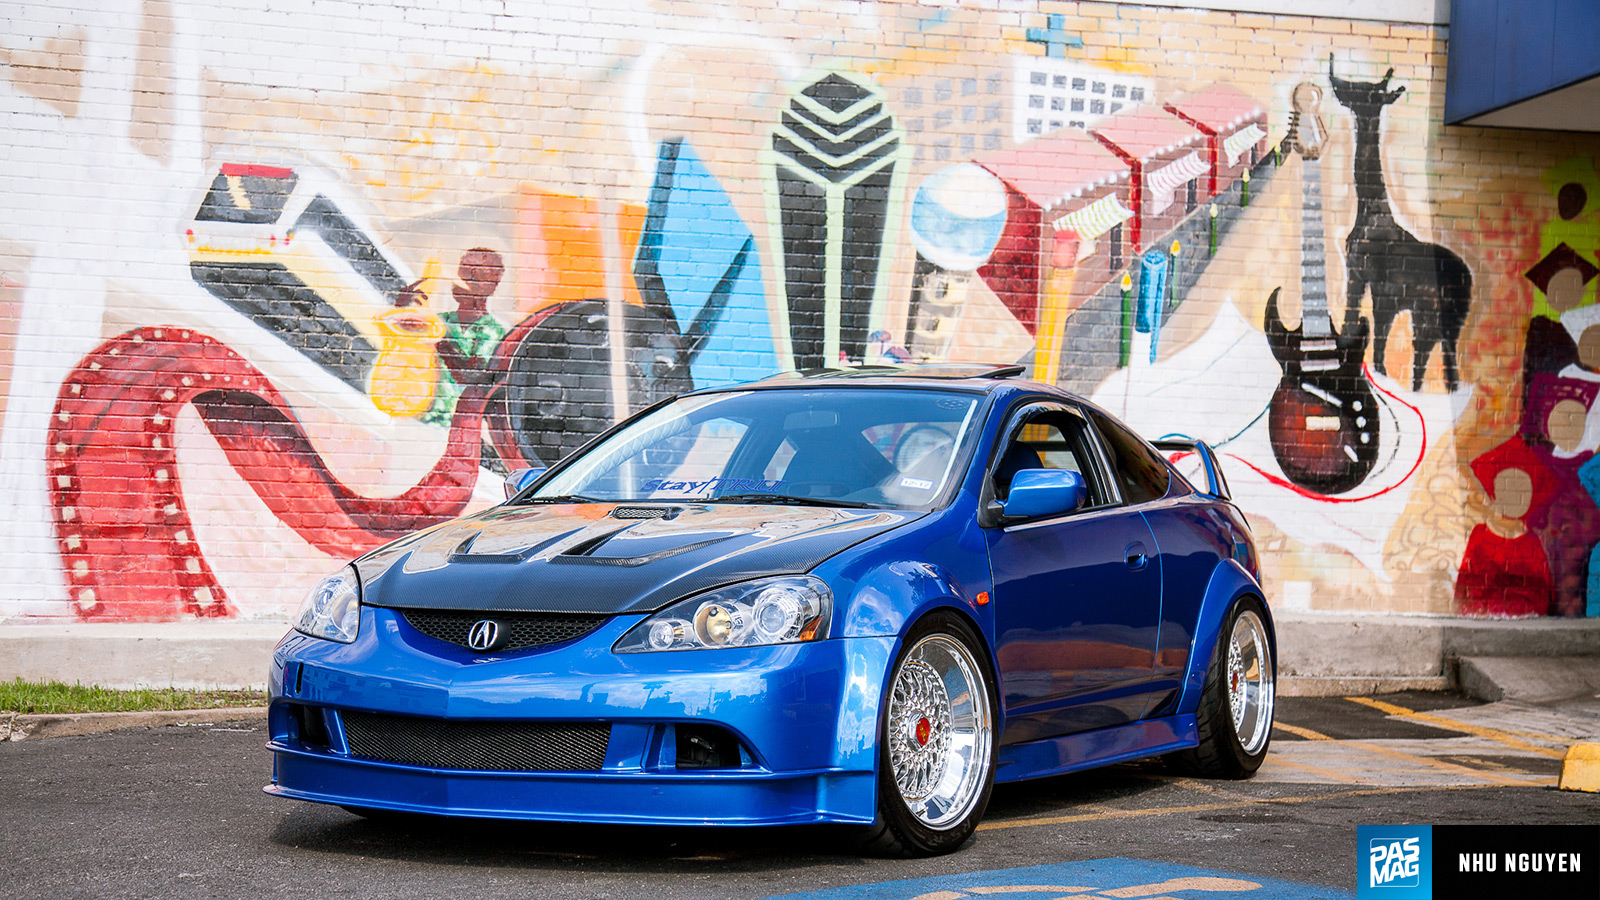 Like Father Like Son Luis Torres 2003 Acura Rsx Type S Pasmag